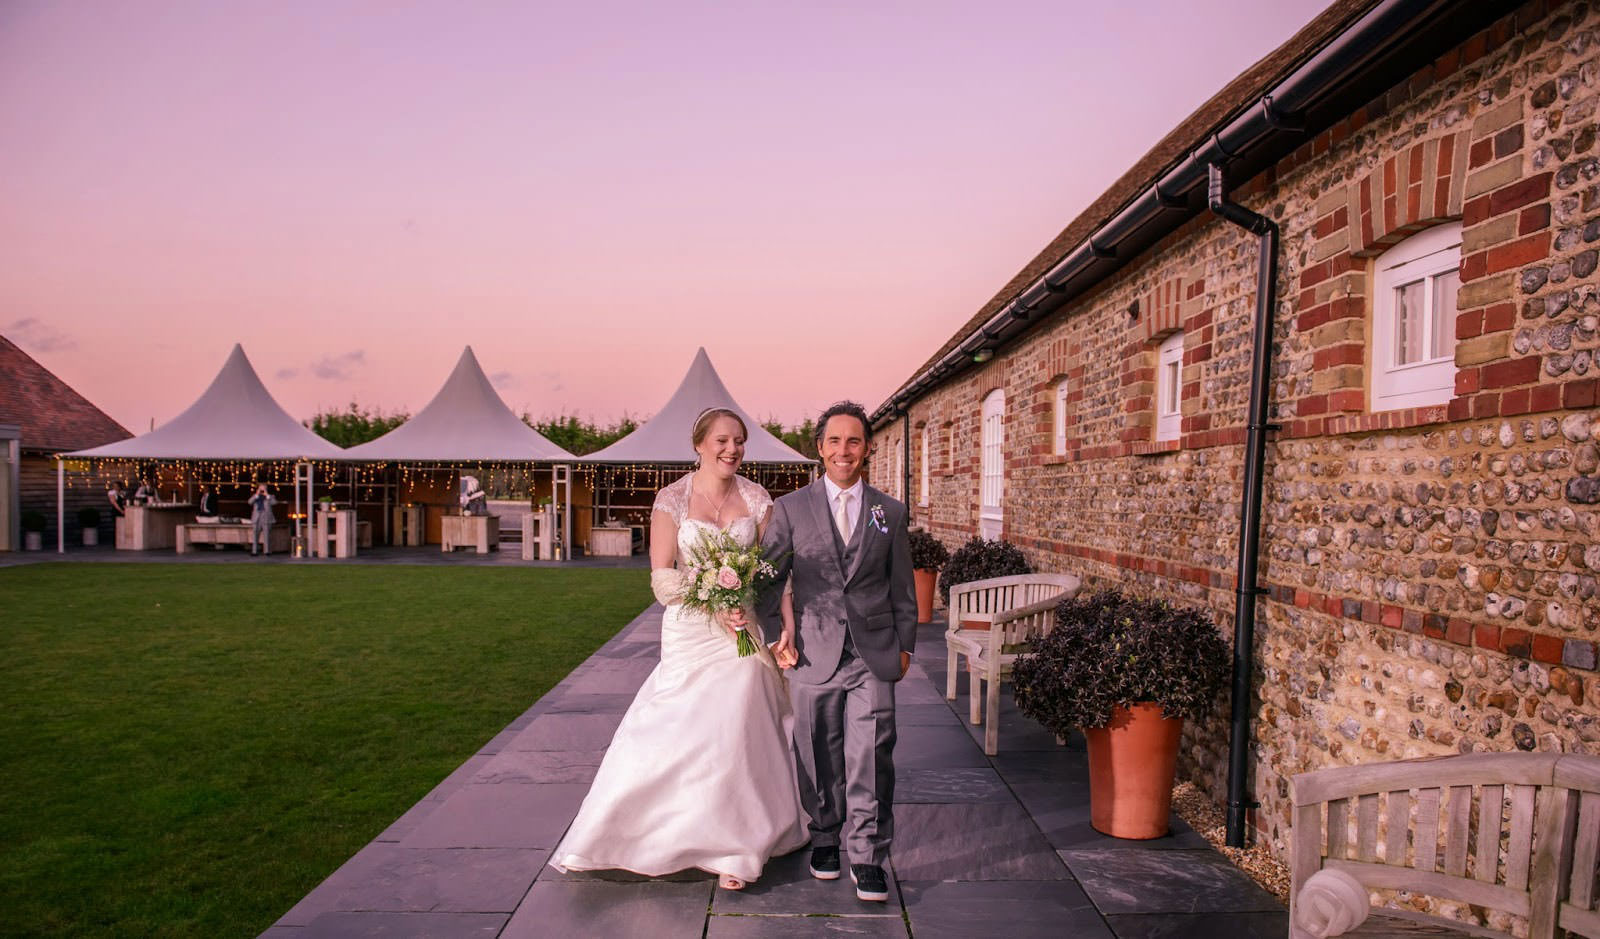 ali-gaudion-chichester-wedding-photographer-southend-barns-winter-wedding-006